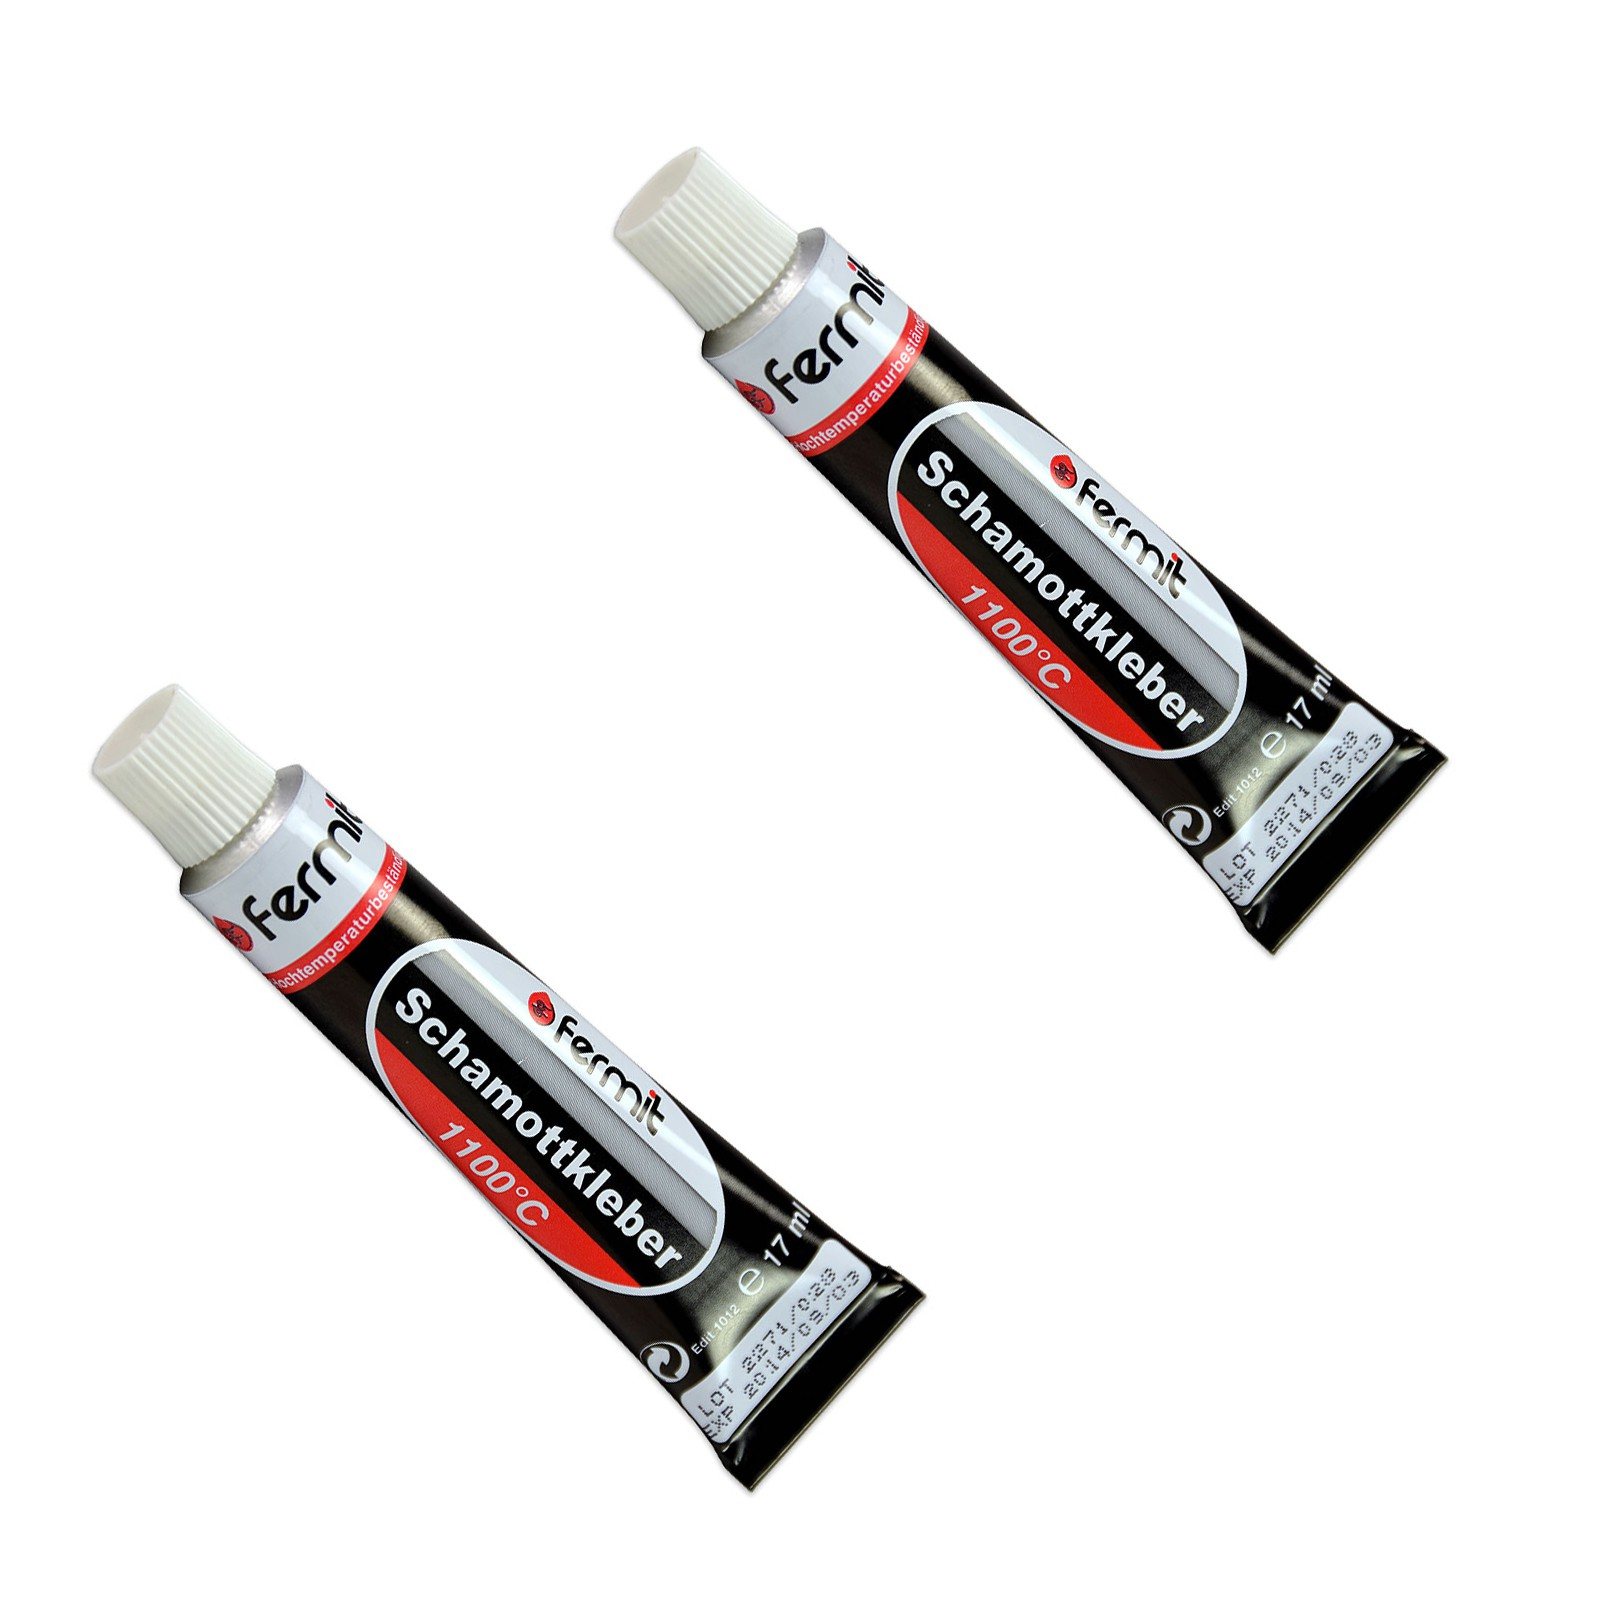 2x schamottkleber ofenschnurkleber 17ml tube feuerfester kleber ebay. Black Bedroom Furniture Sets. Home Design Ideas